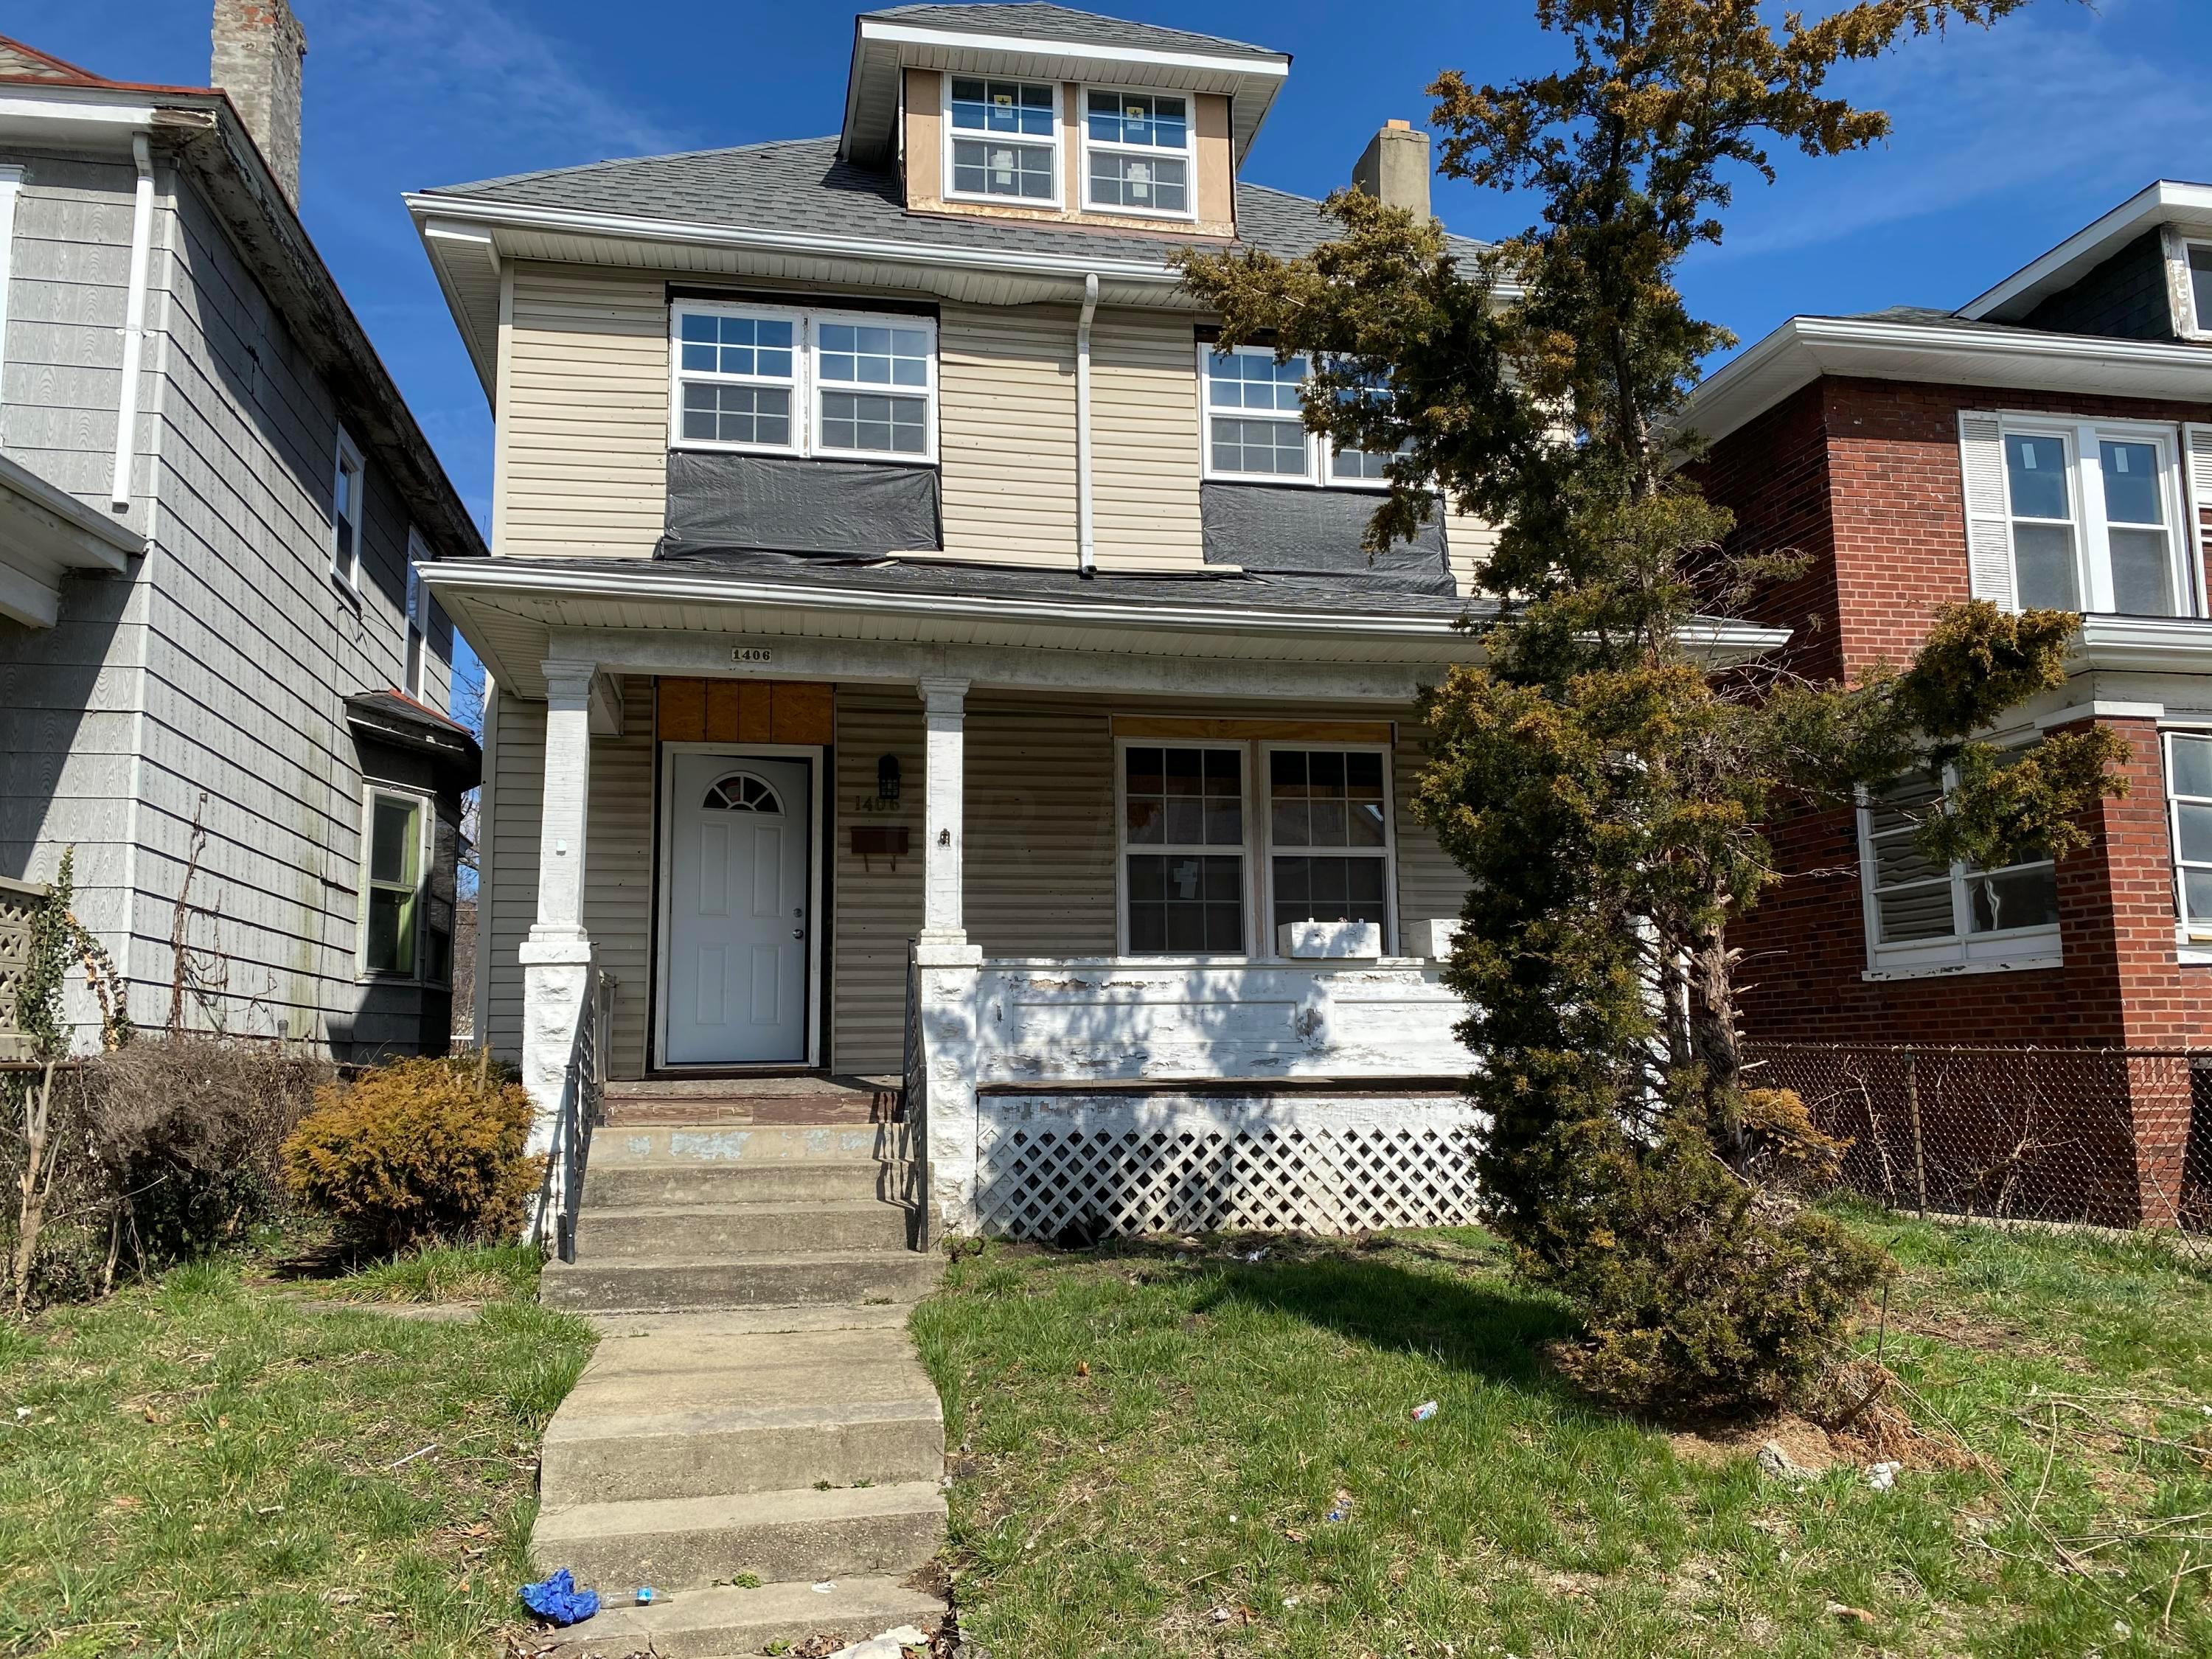 1406 Hildreth Avenue, Columbus, Ohio 43203, 3 Bedrooms Bedrooms, ,5 BathroomsBathrooms,Residential,For Sale,Hildreth,220007912